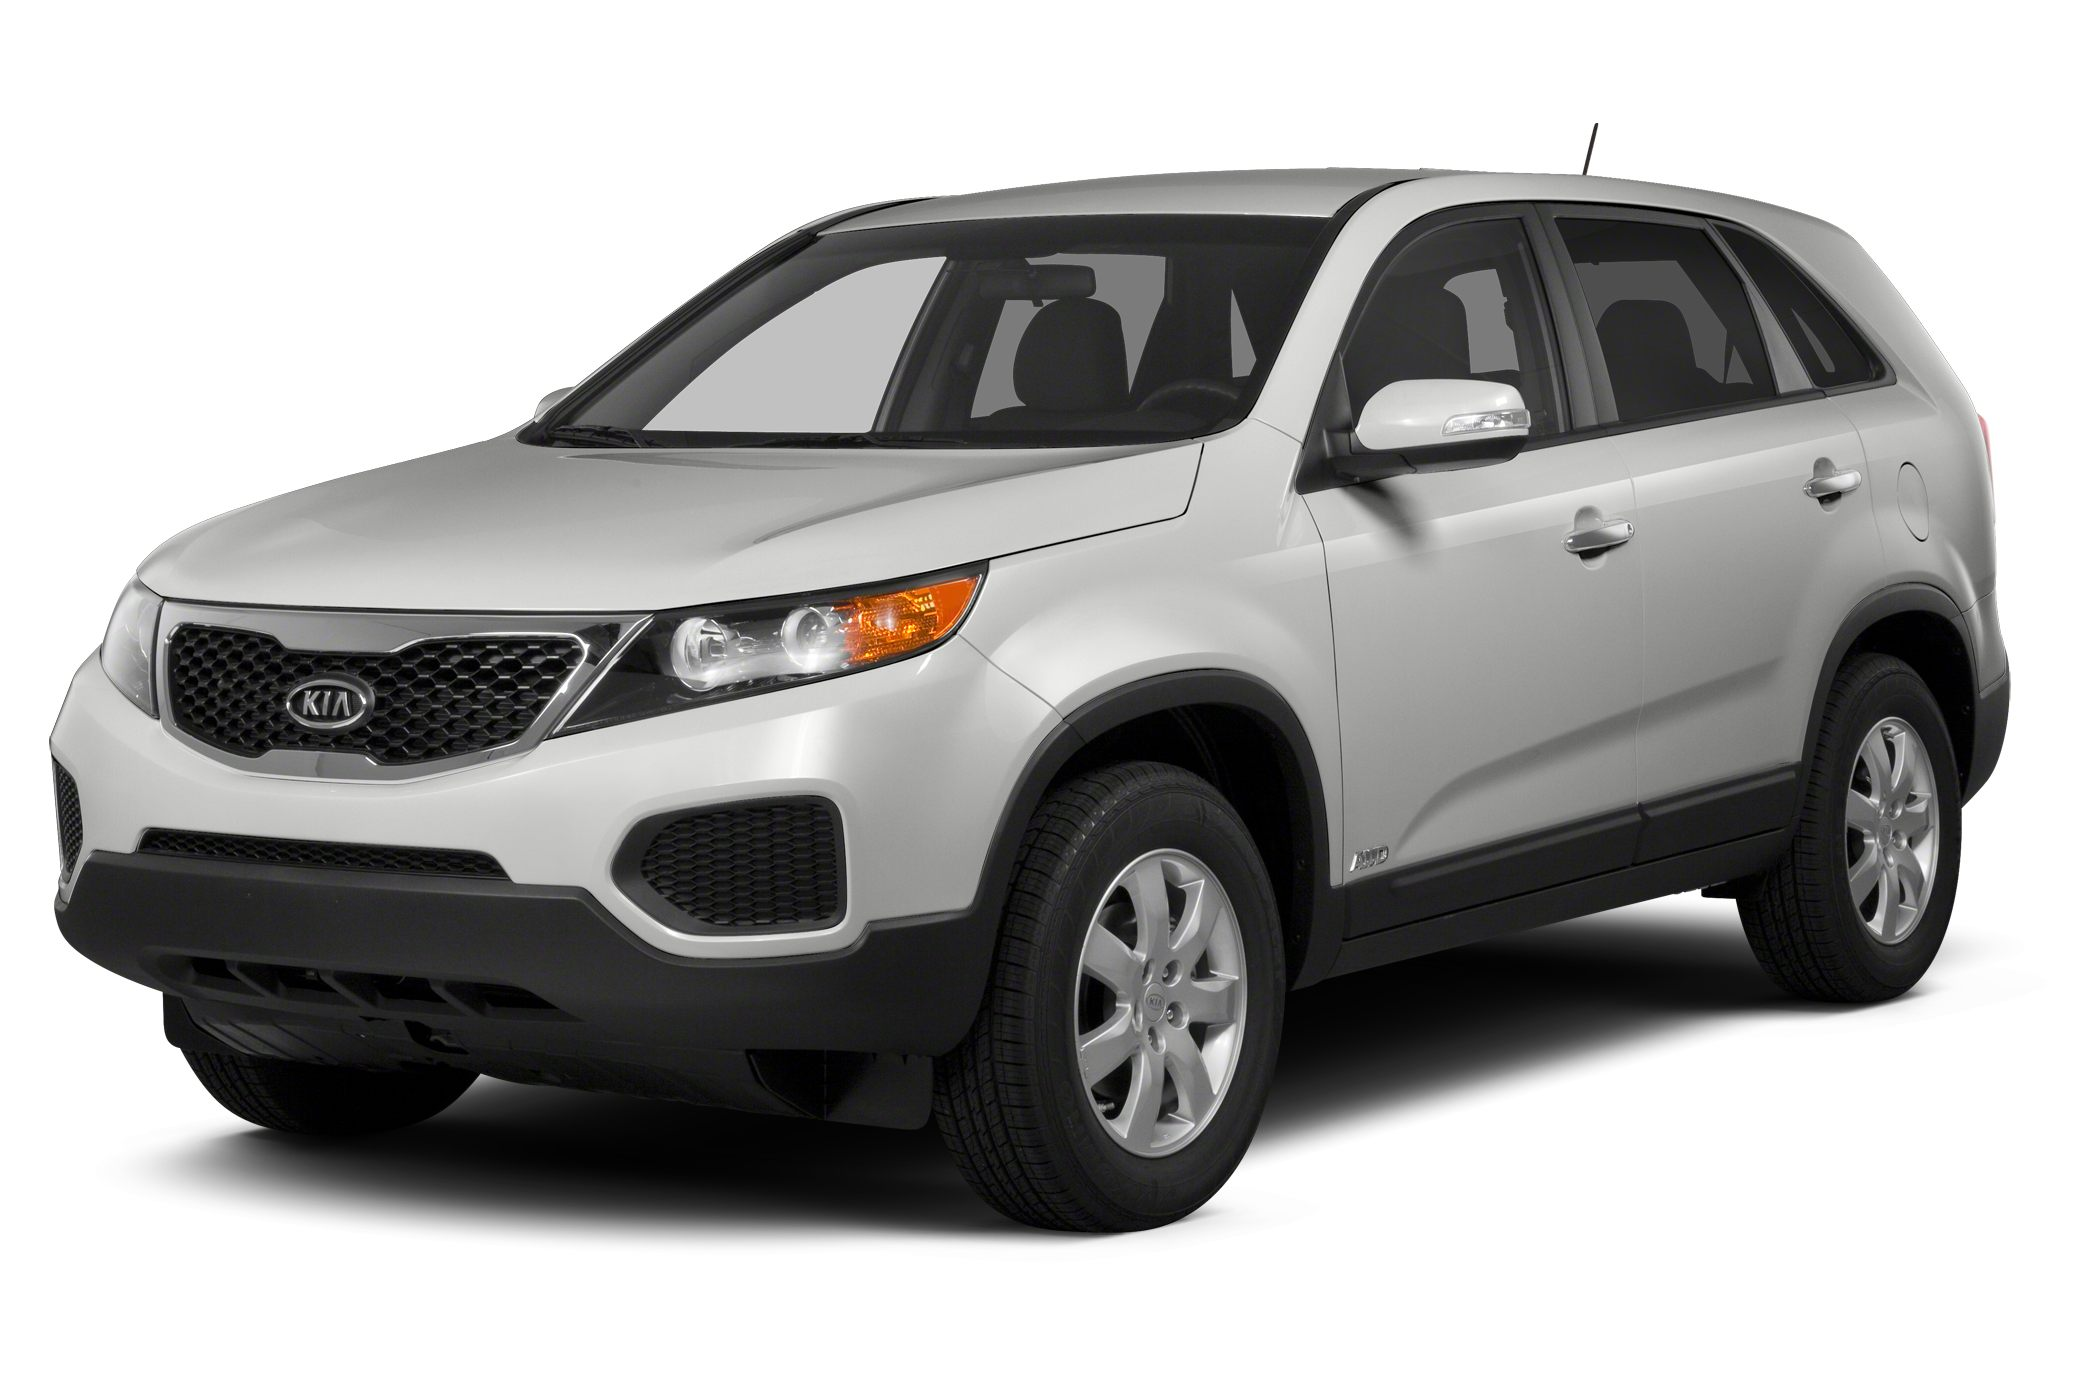 2012 Kia Sorento LX CLEAN CARFAX BACK-UP-CAMERA BLUETOOTH HEATED SEATS and TINTED W